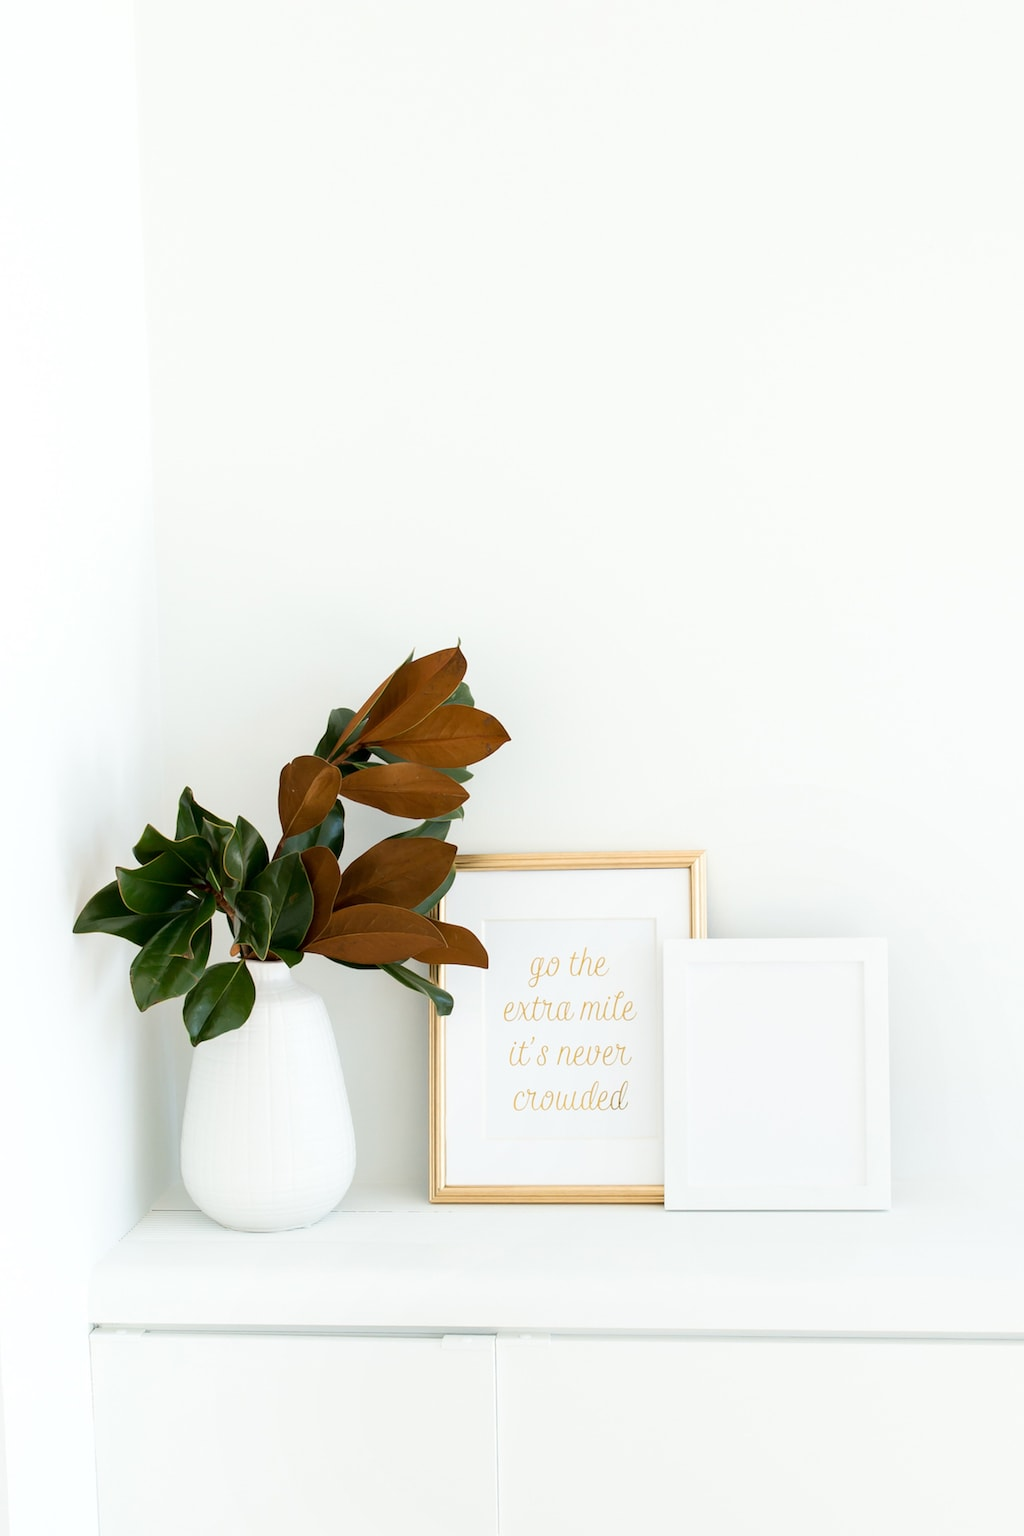 30 Days of Gratitude: flowers and frame